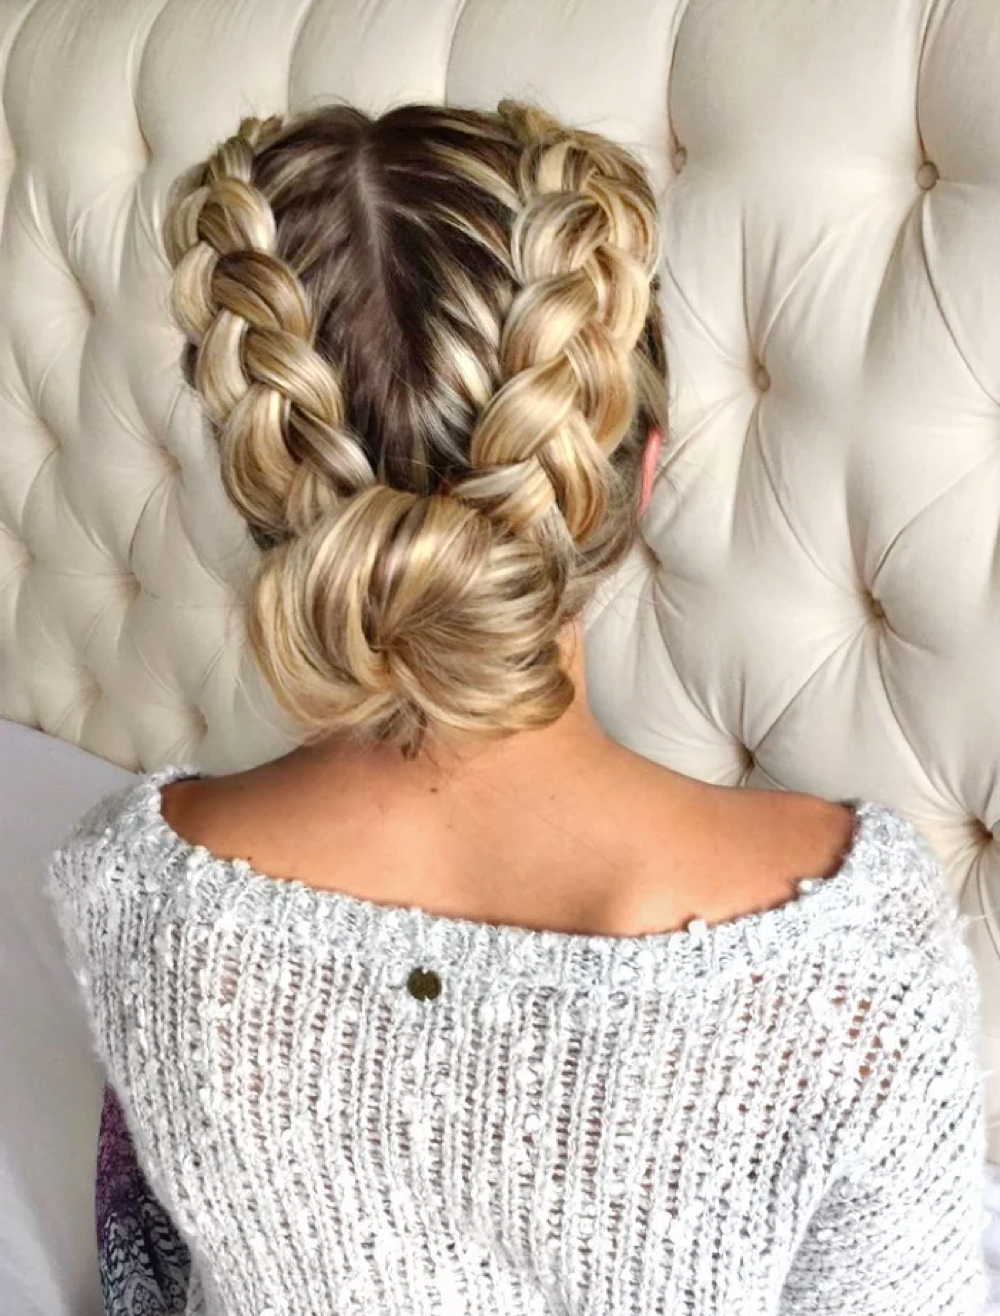 29 Gorgeous Braided Updo Ideas For 2019 Inside Newest Double Crown Updo Braided Hairstyles (View 5 of 20)